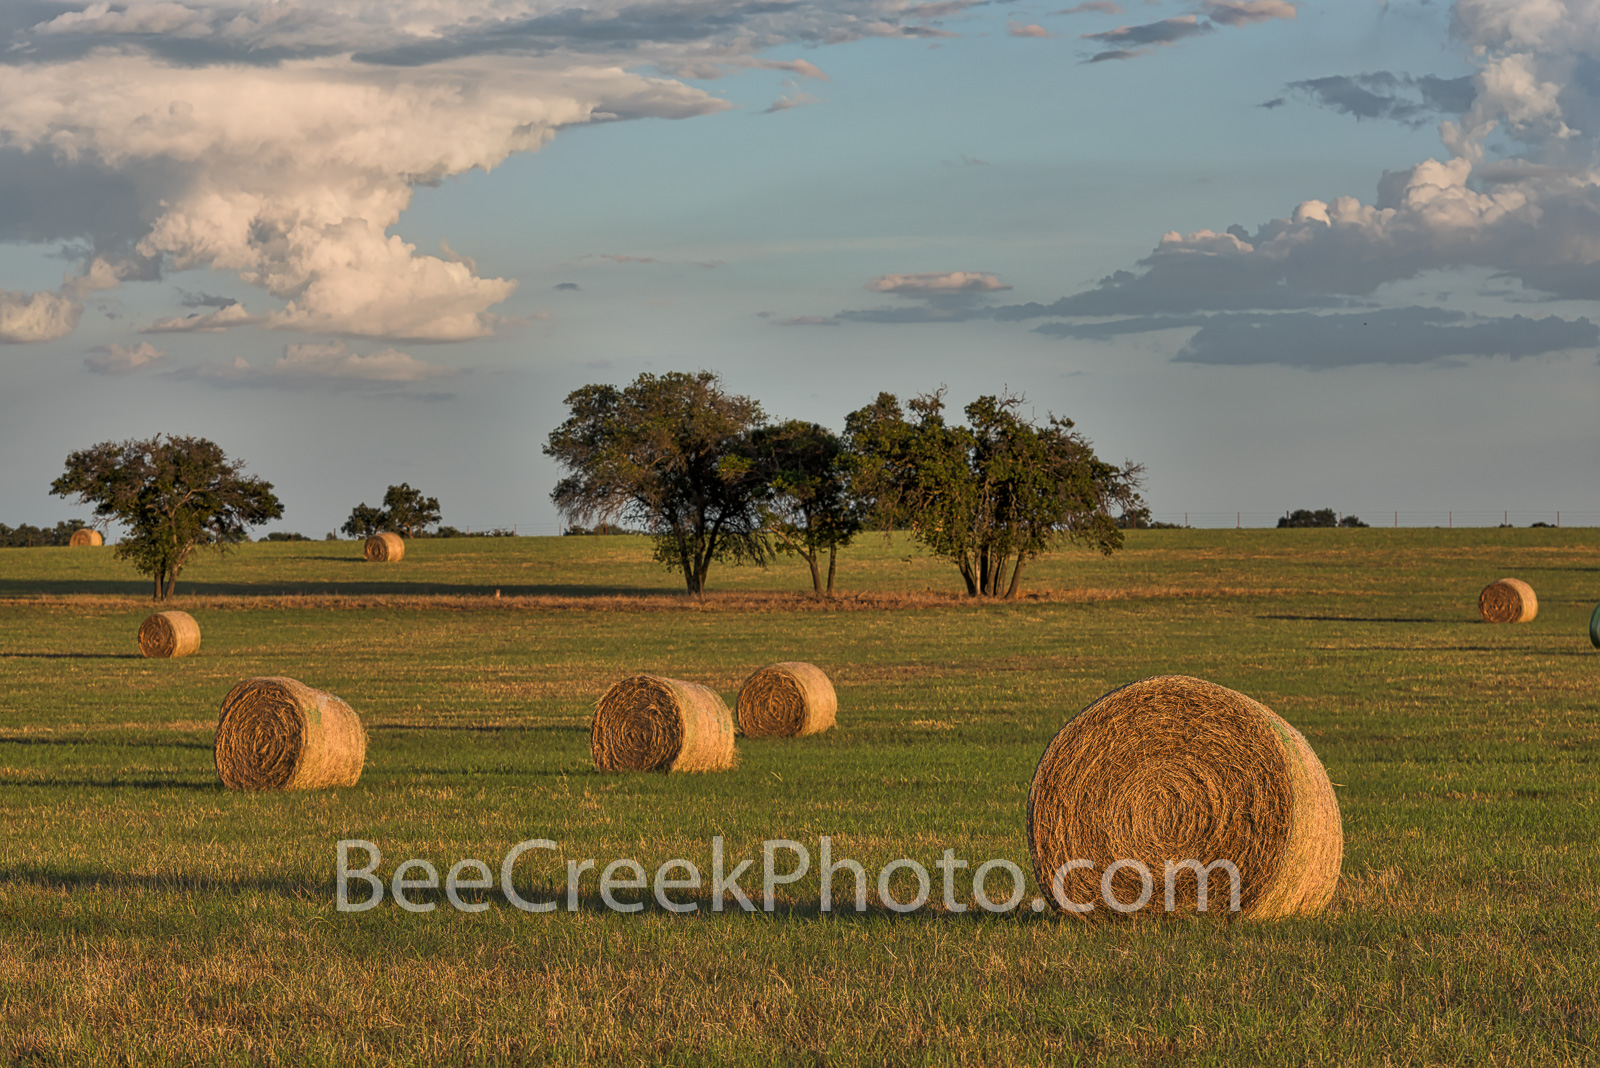 Haybales, hay, bales, Texas Hill Country, landscape, grasses, round bales, feed, horses, cows, goats, sheep, sunset, clouds, evening, farmer, field, llano, Texas, golden, cloud, , photo